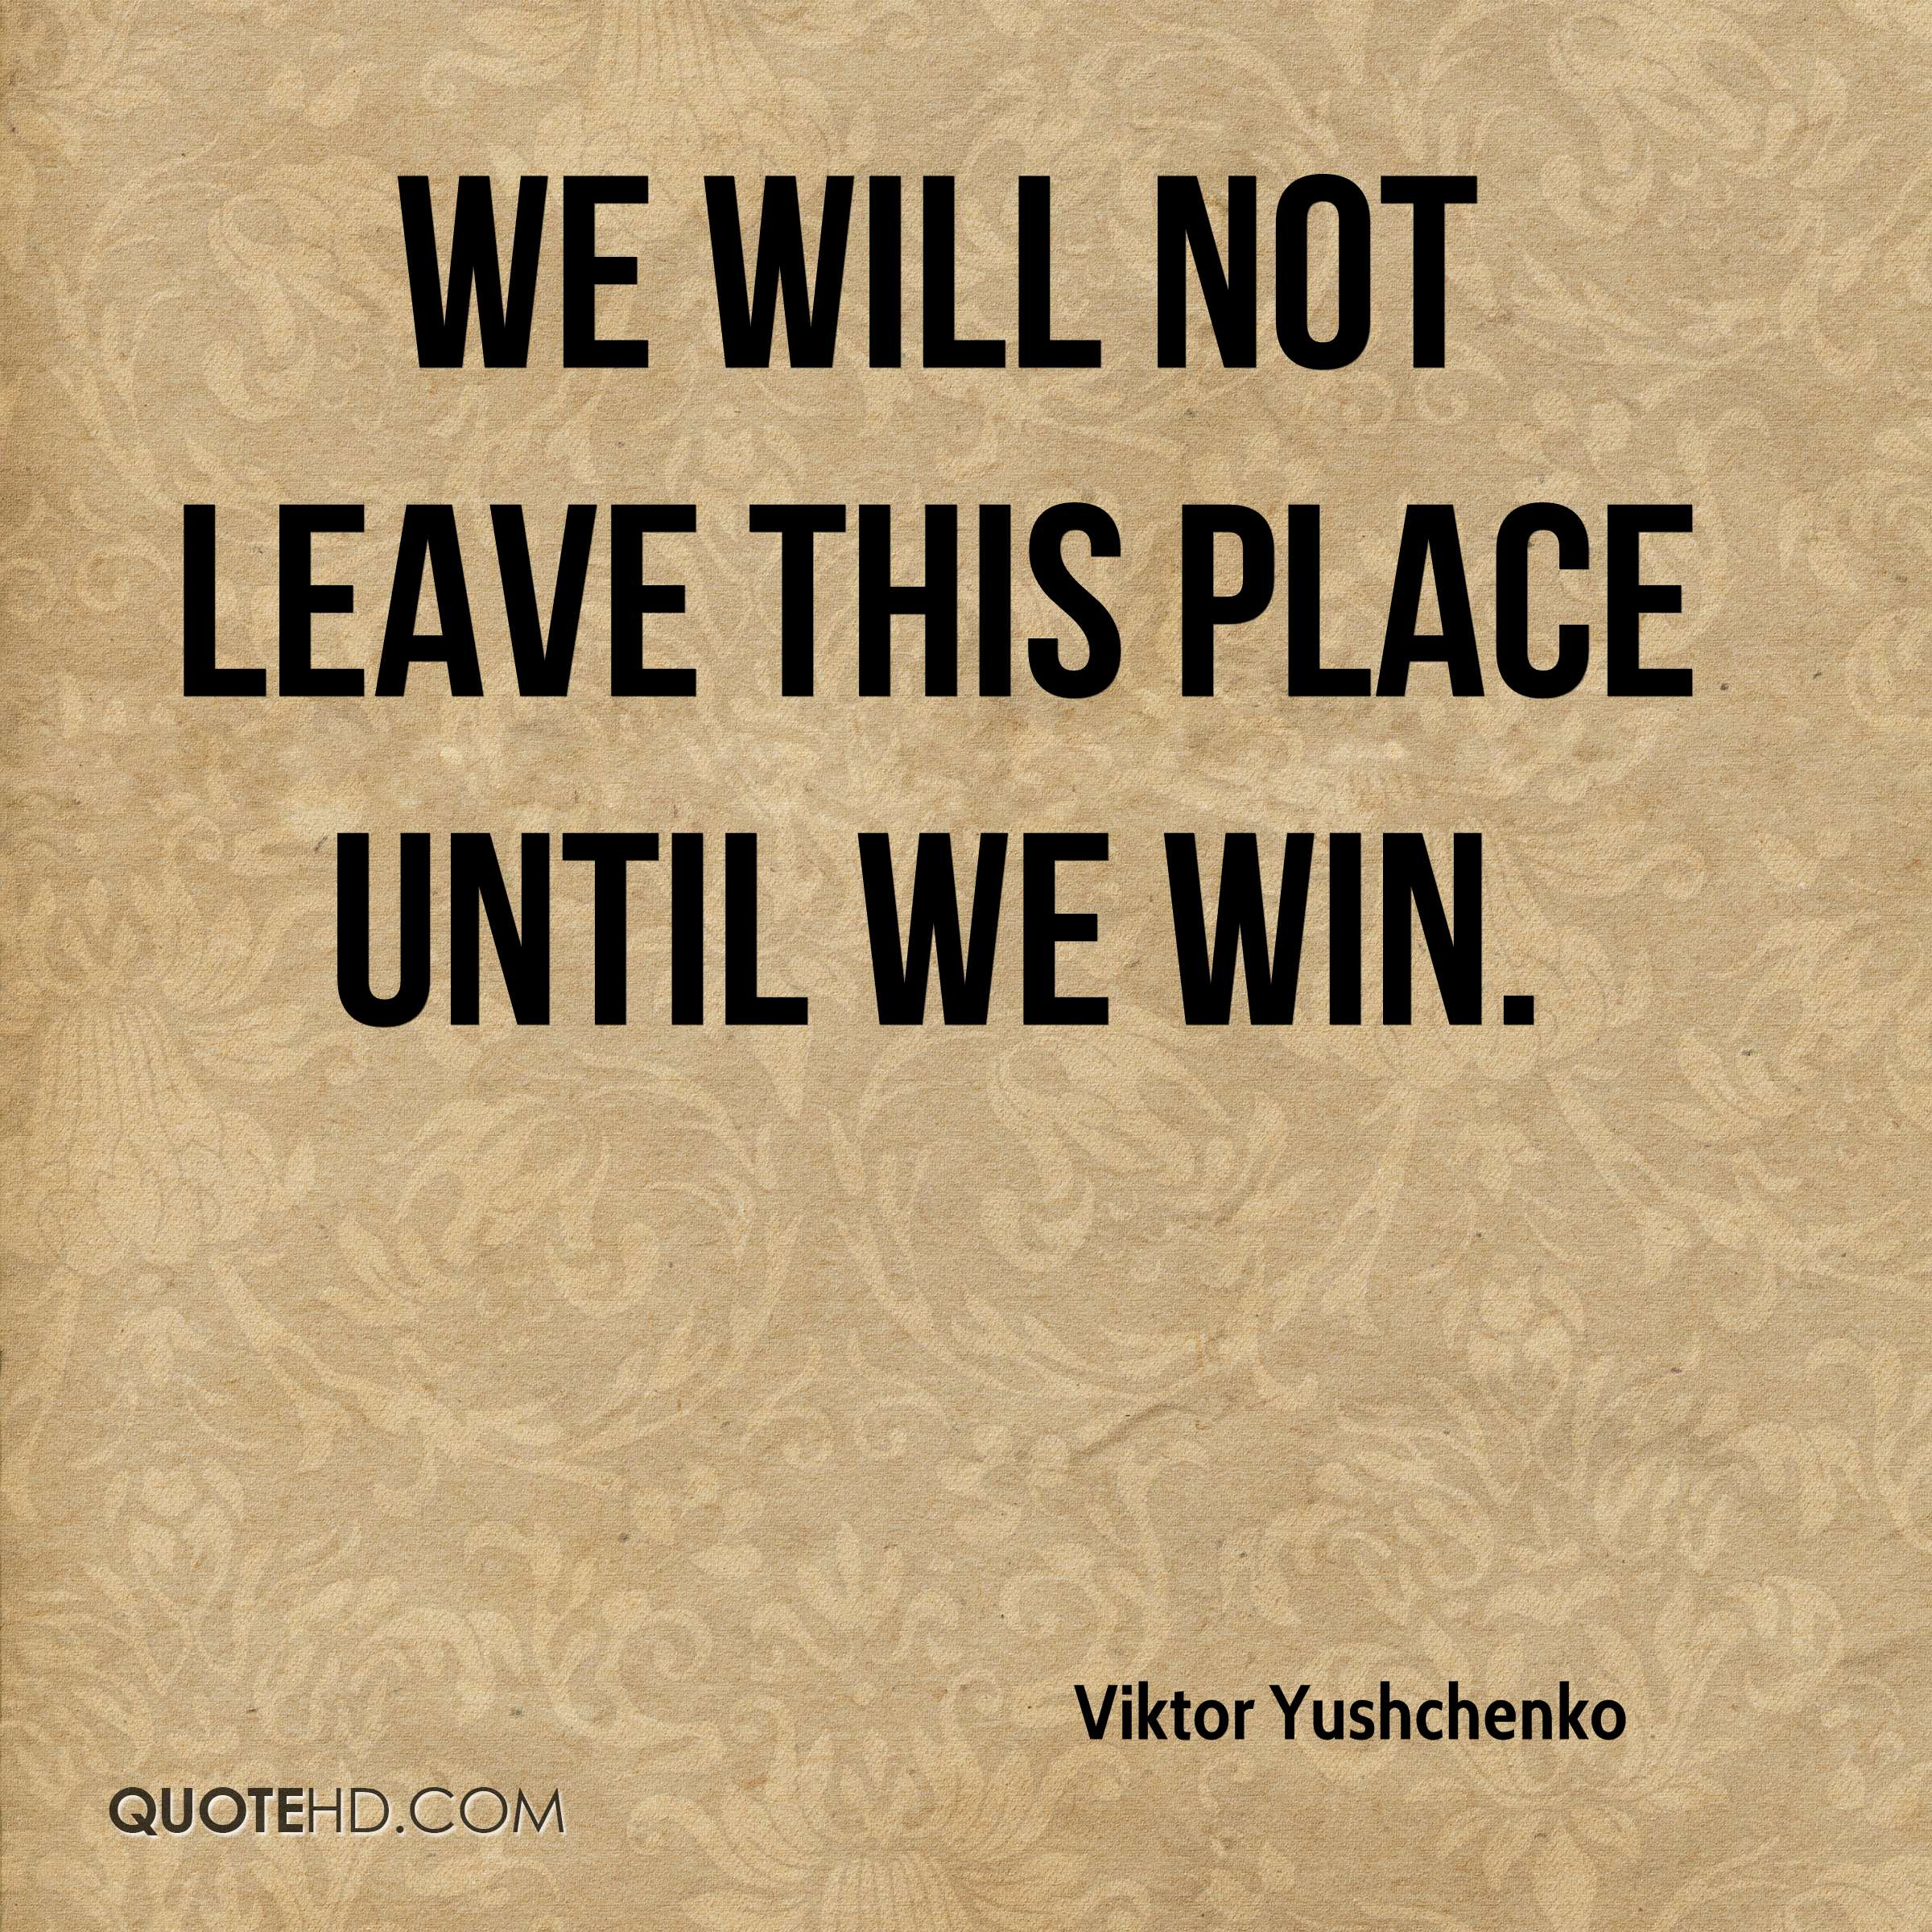 We will not leave this place until we win.